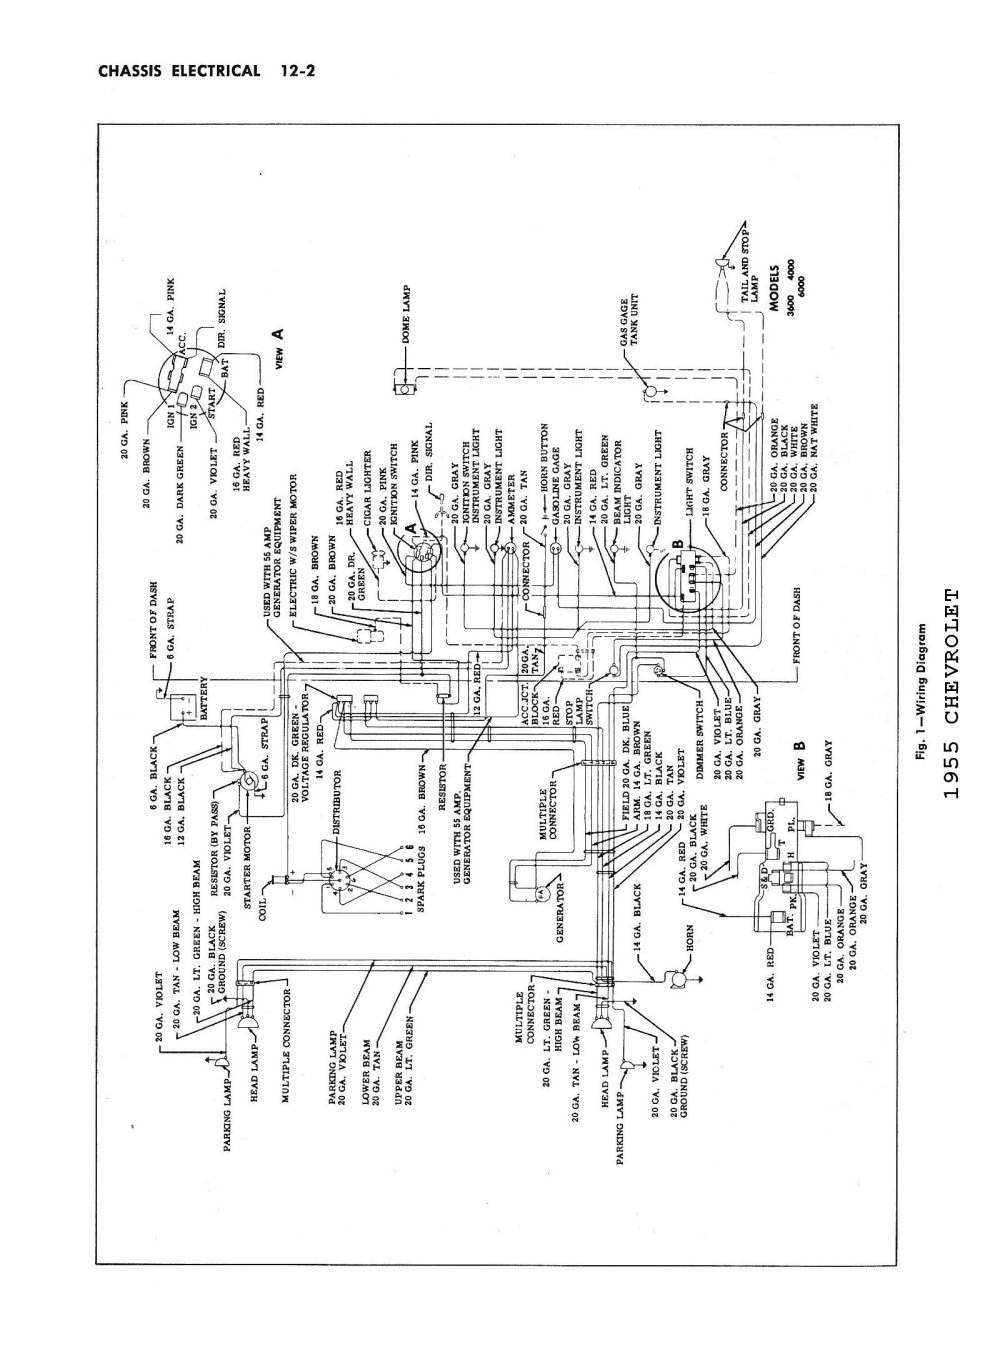 medium resolution of dutchmen wiring diagrams wiring library coachmen wiring diagram 1959 chevy pickup wiring diagram simple wiring diagram